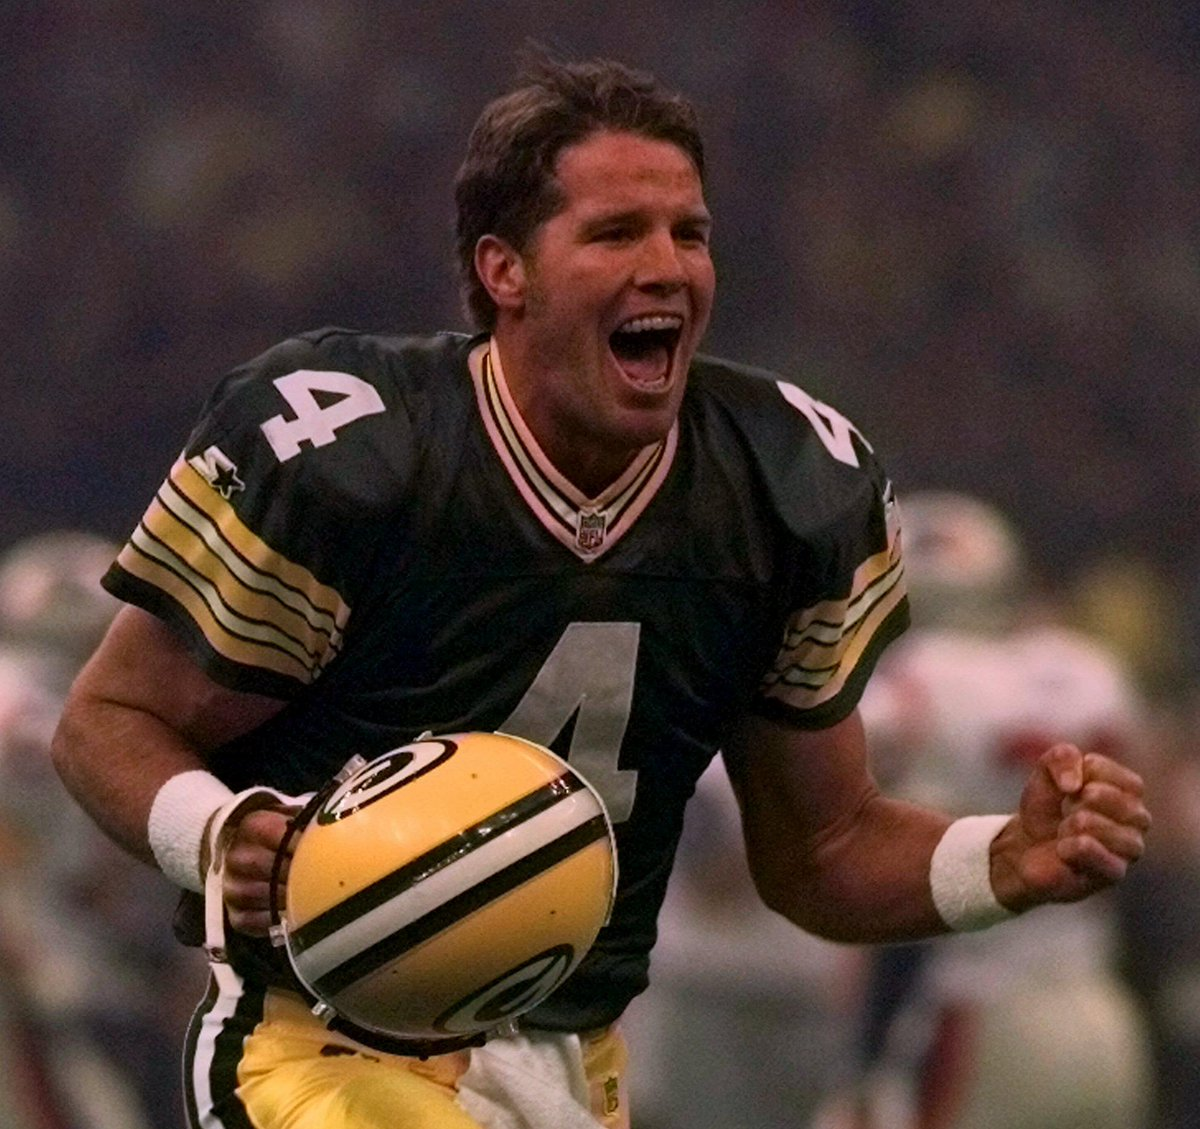 Happy birthday to legendary #Packers QB @BrettFavre!   A look back at No. 4&#39;s Hall of Fame career :  http:// pckrs.com/famsb  &nbsp;     #GoPackGo <br>http://pic.twitter.com/fI978JqYpx